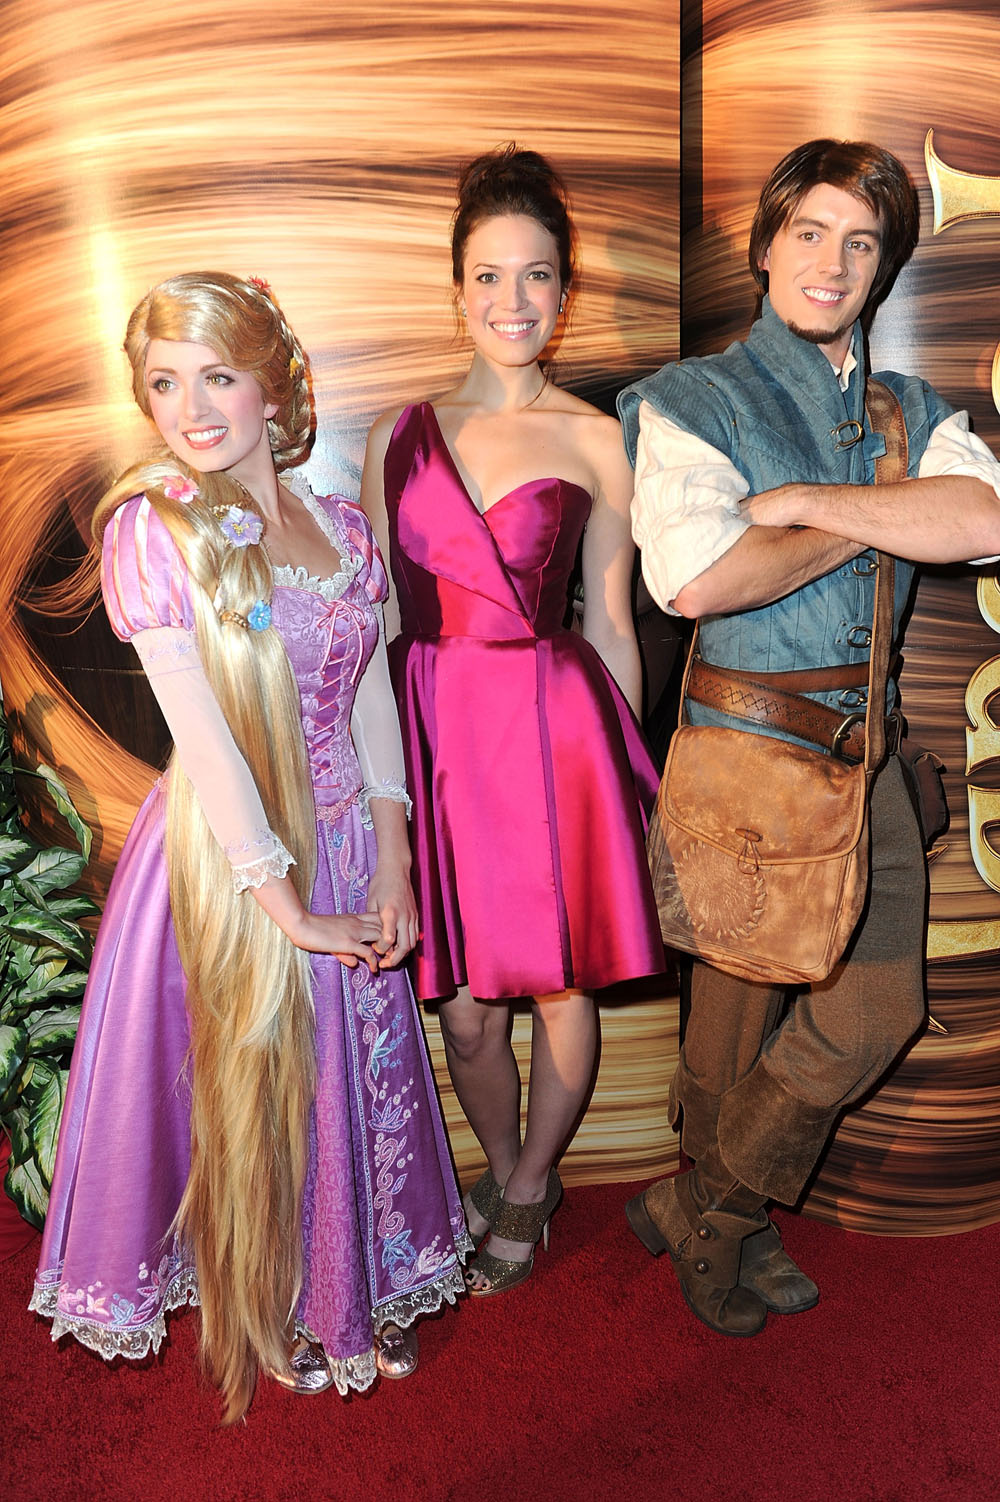 Walt disney pictures presents the premiere of tangled red carpet